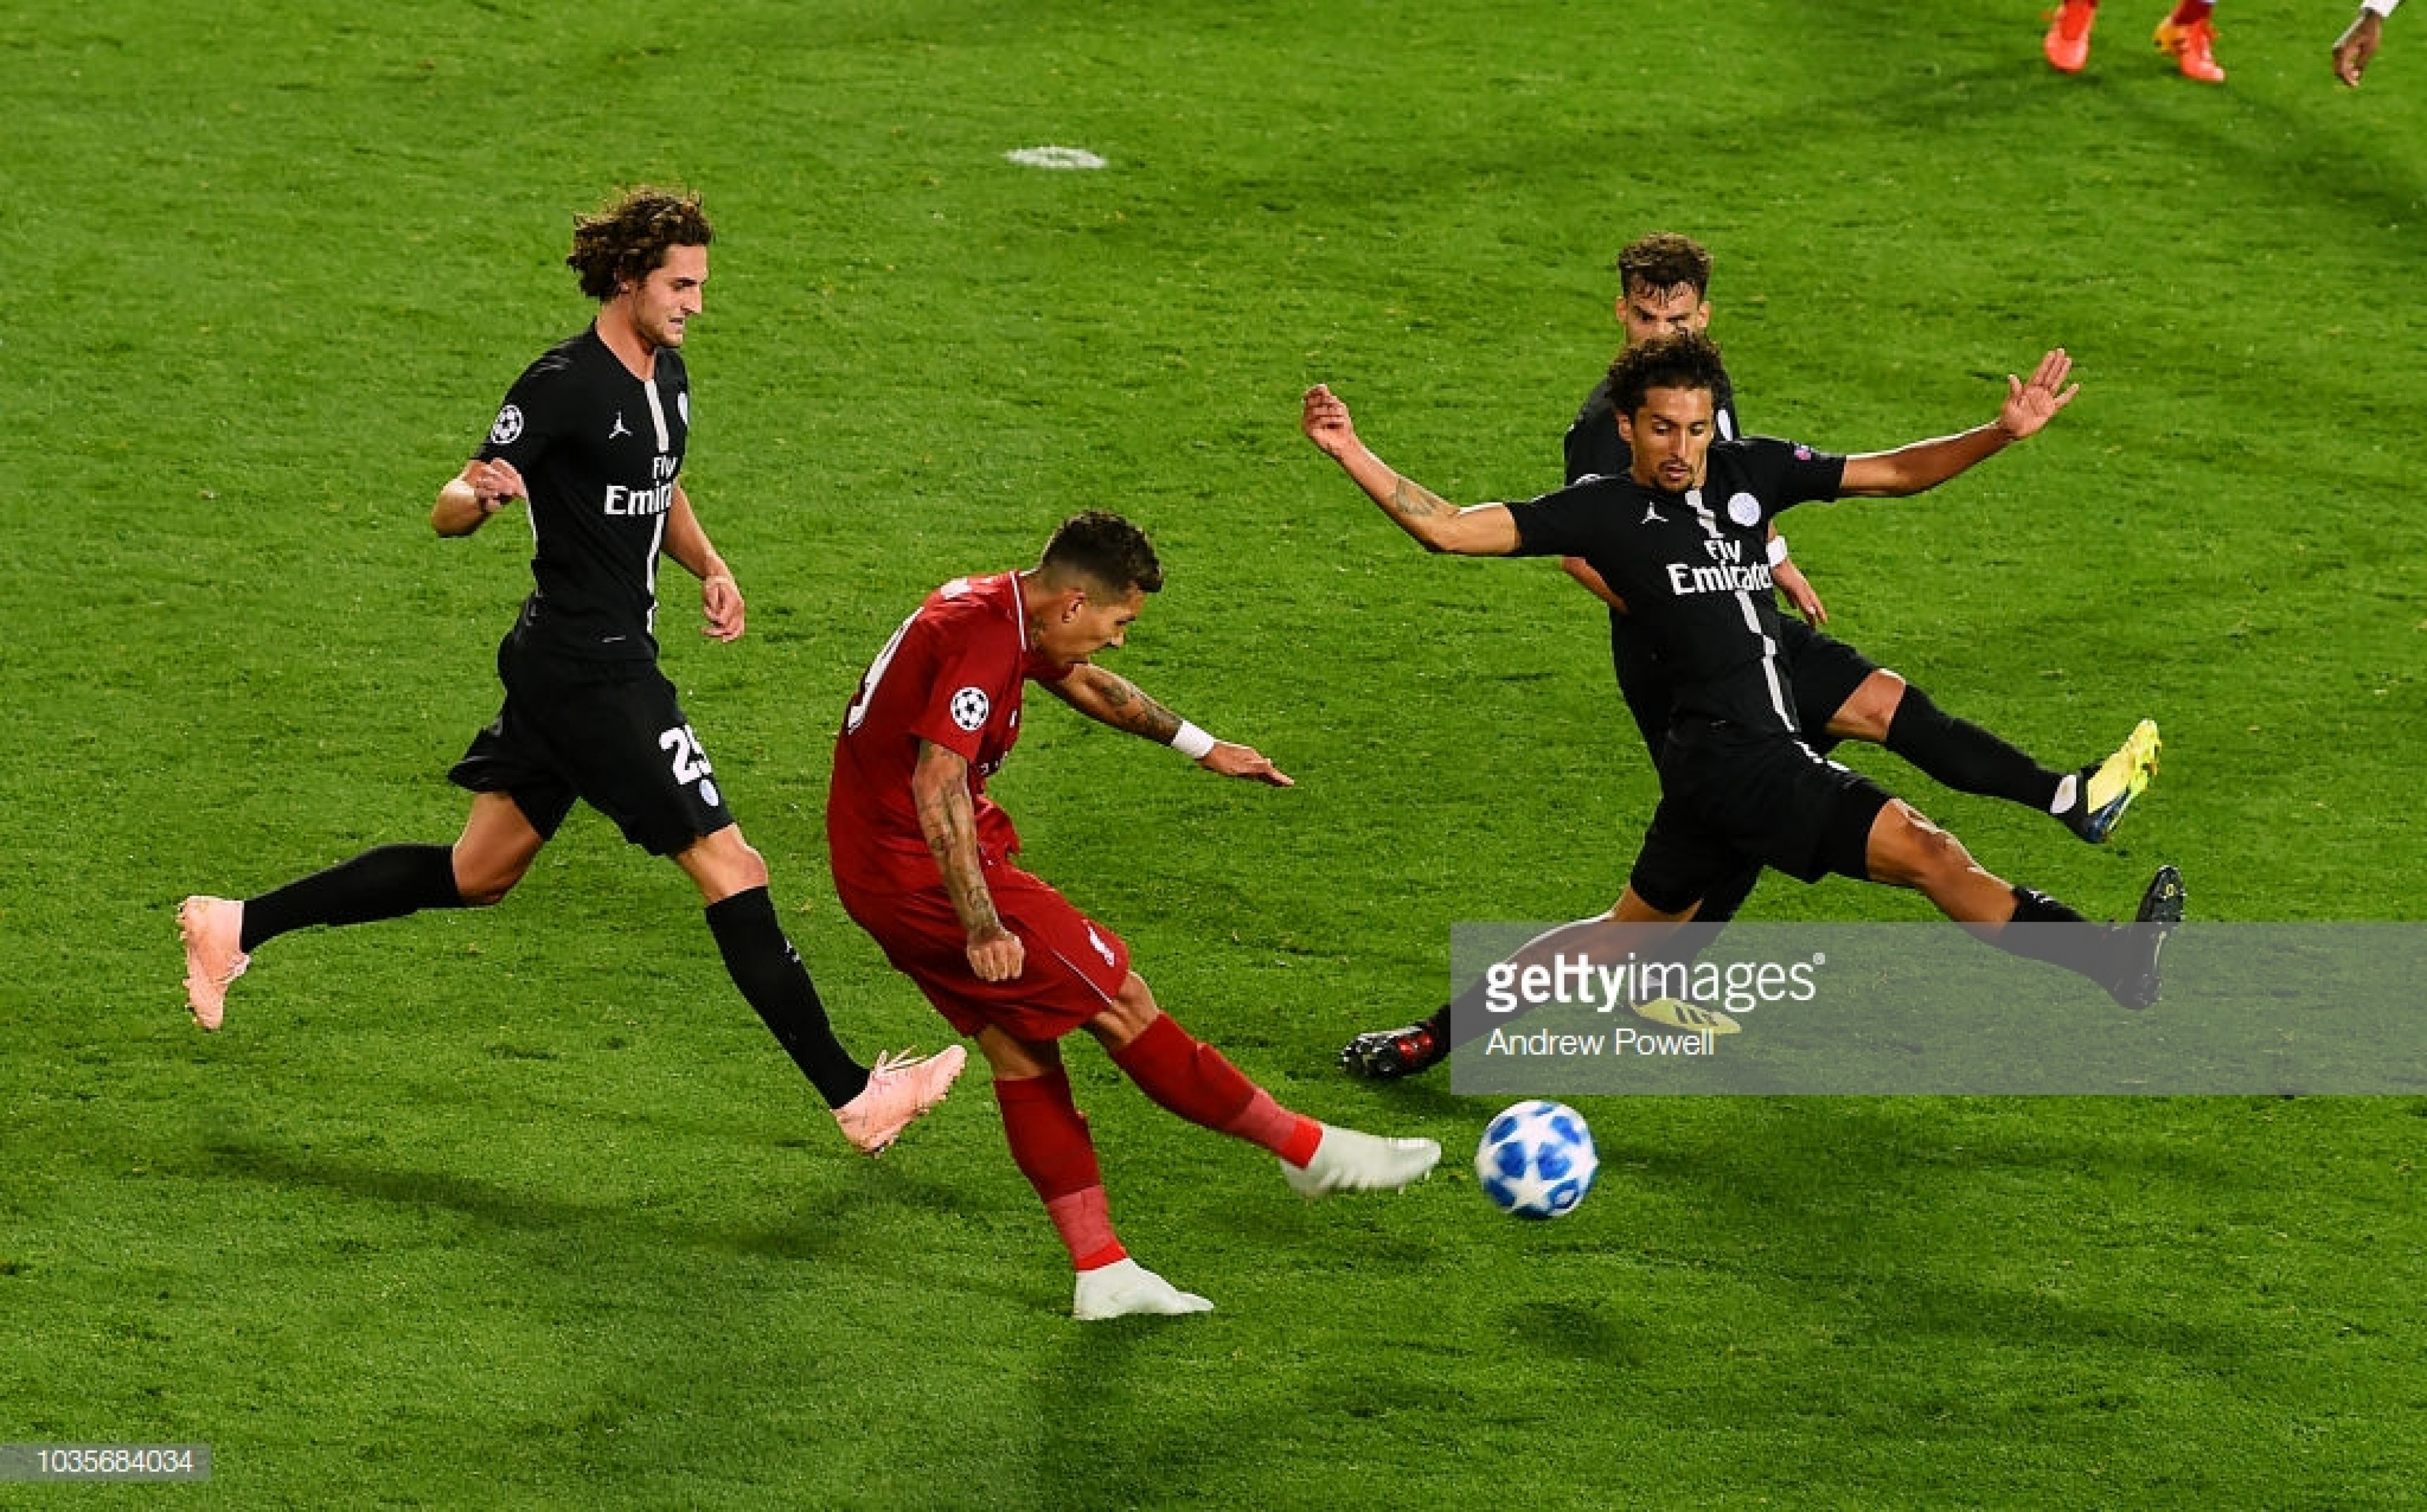 Liverpool 3-2 PSG: Firmino provides telling touch as Liverpool make winning start